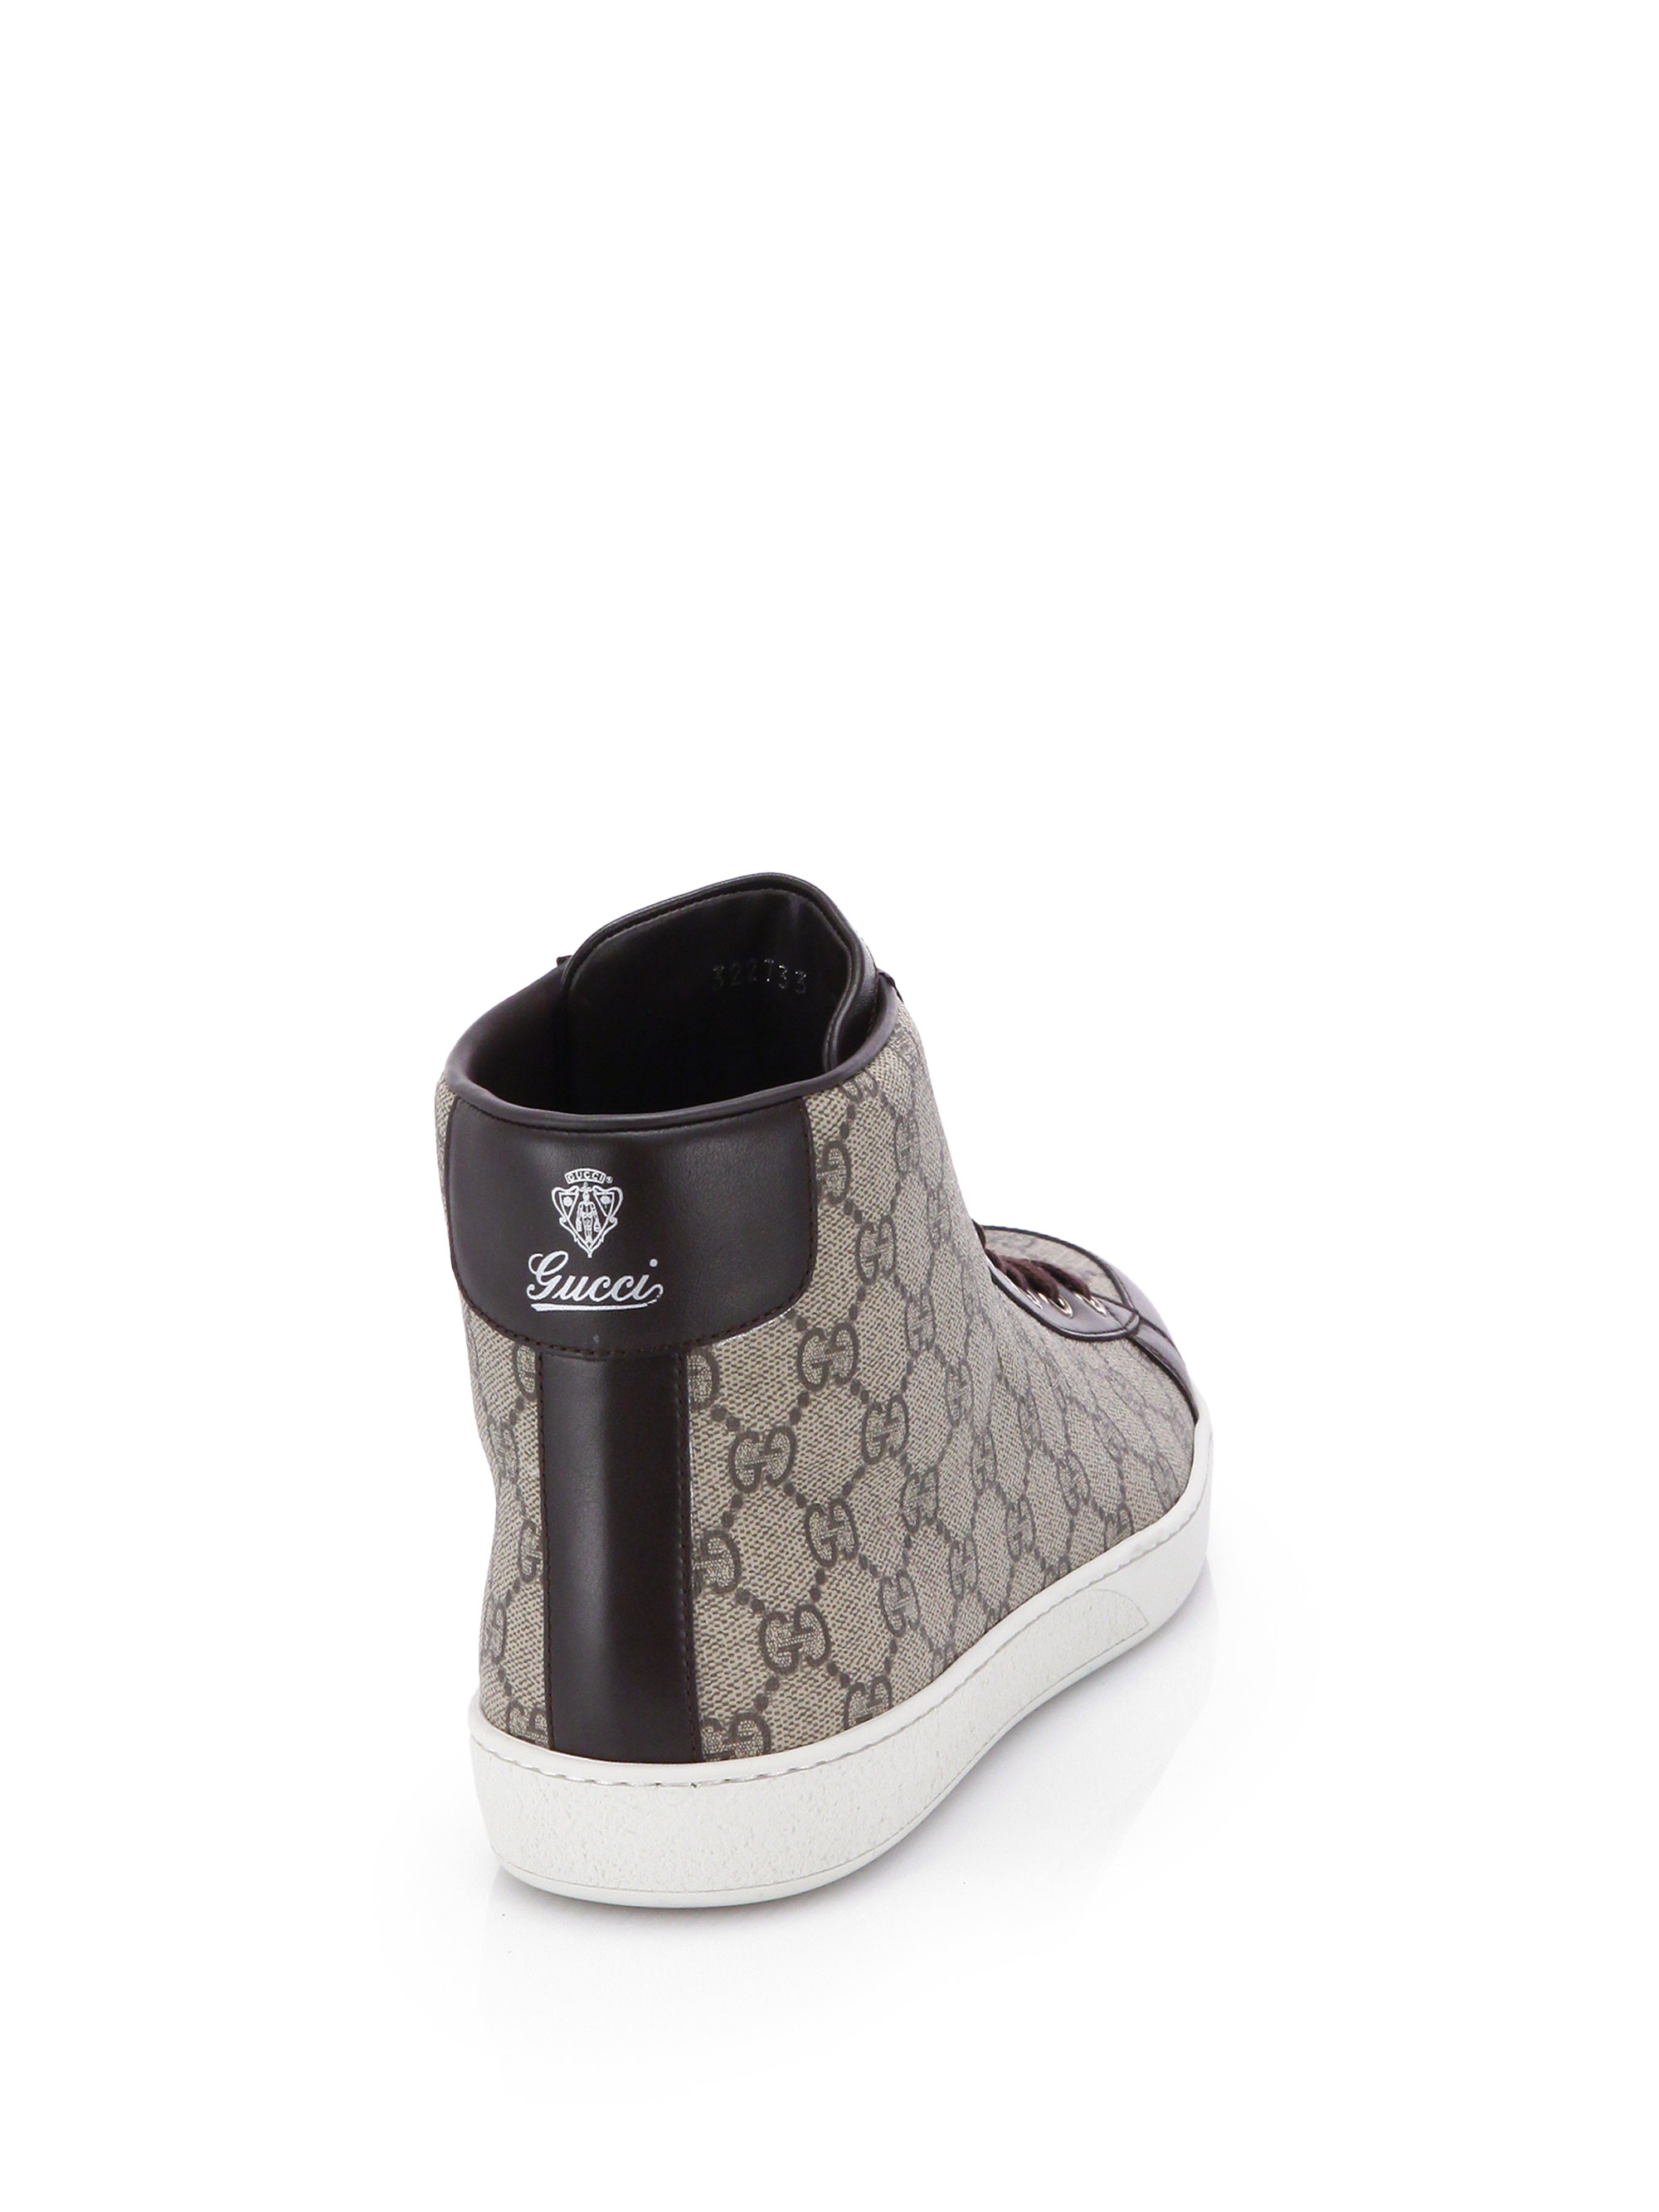 Lyst Gucci Gg Supreme Canvas High Top Sneakers In Natural For Men